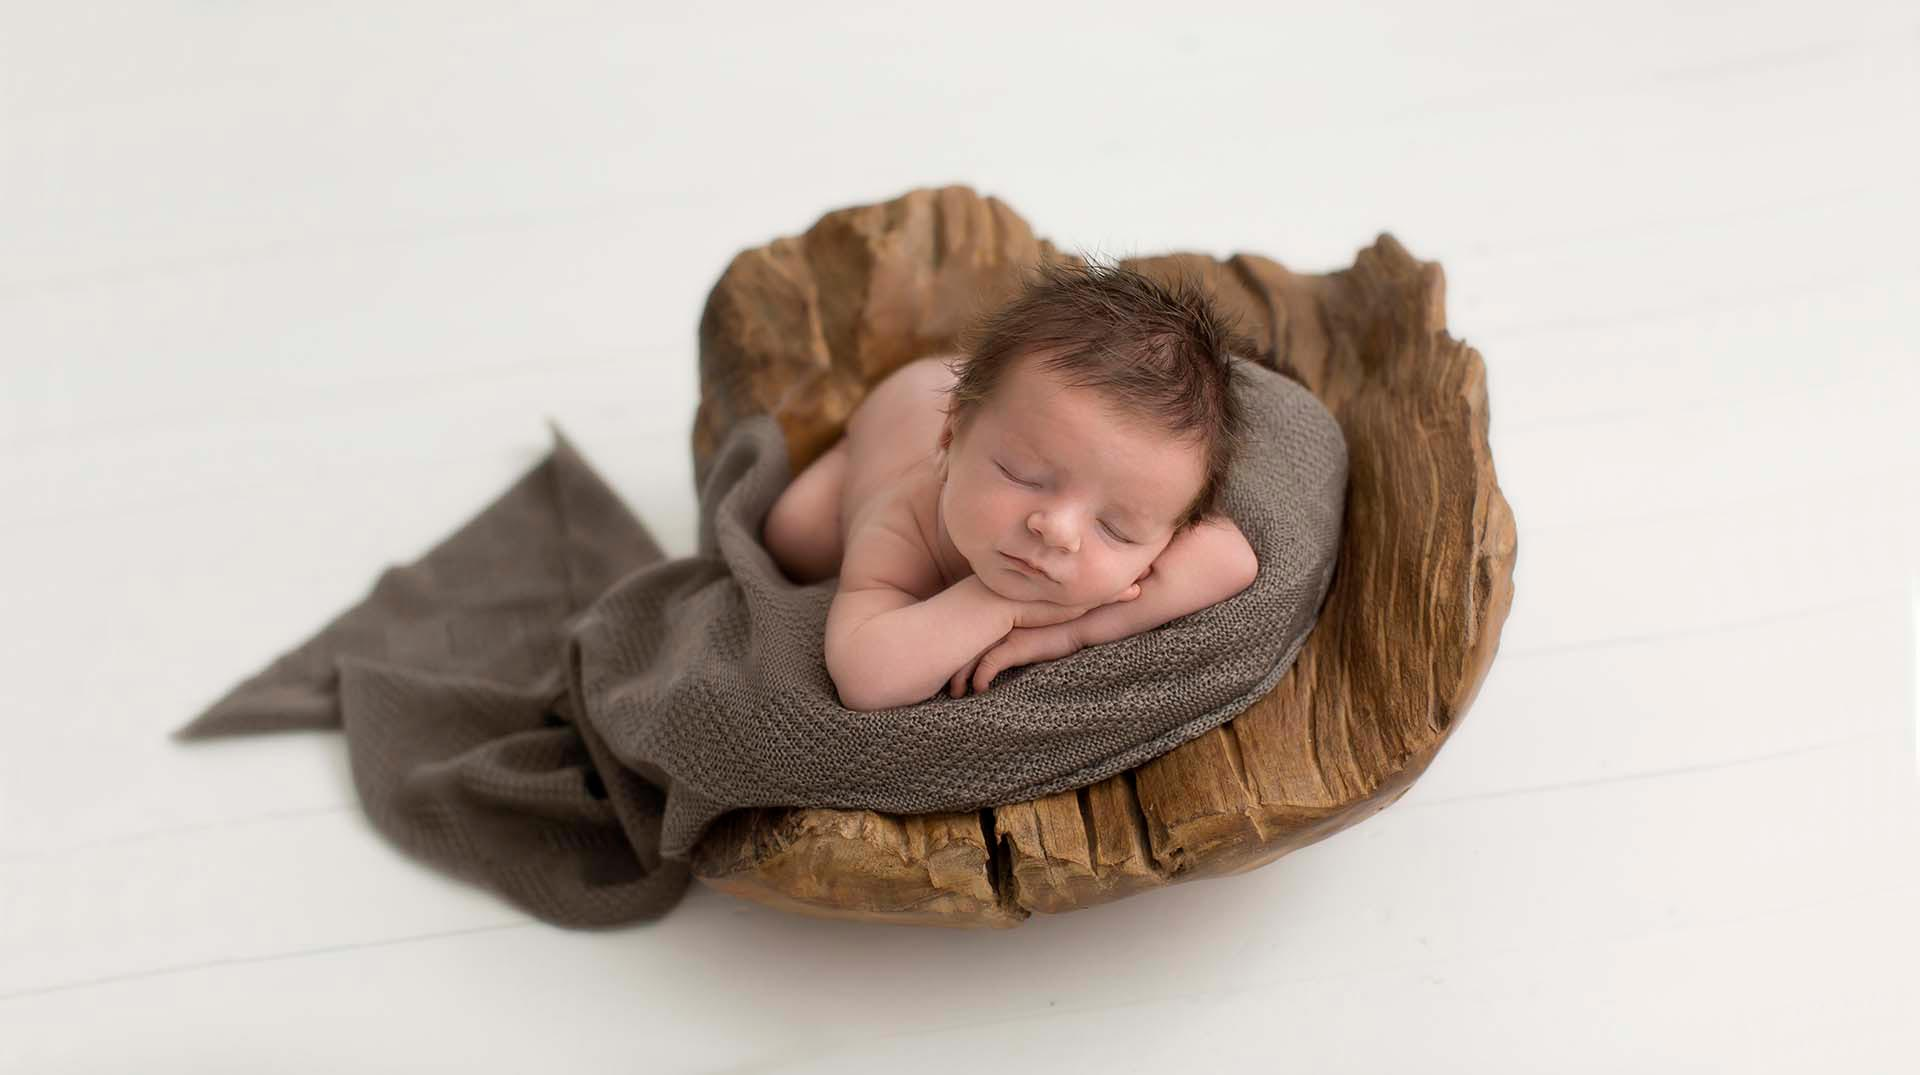 hayden-merino-extra-soft-textured-wrap-knitted-taupe-brown-all-newborn-props-photography-prop